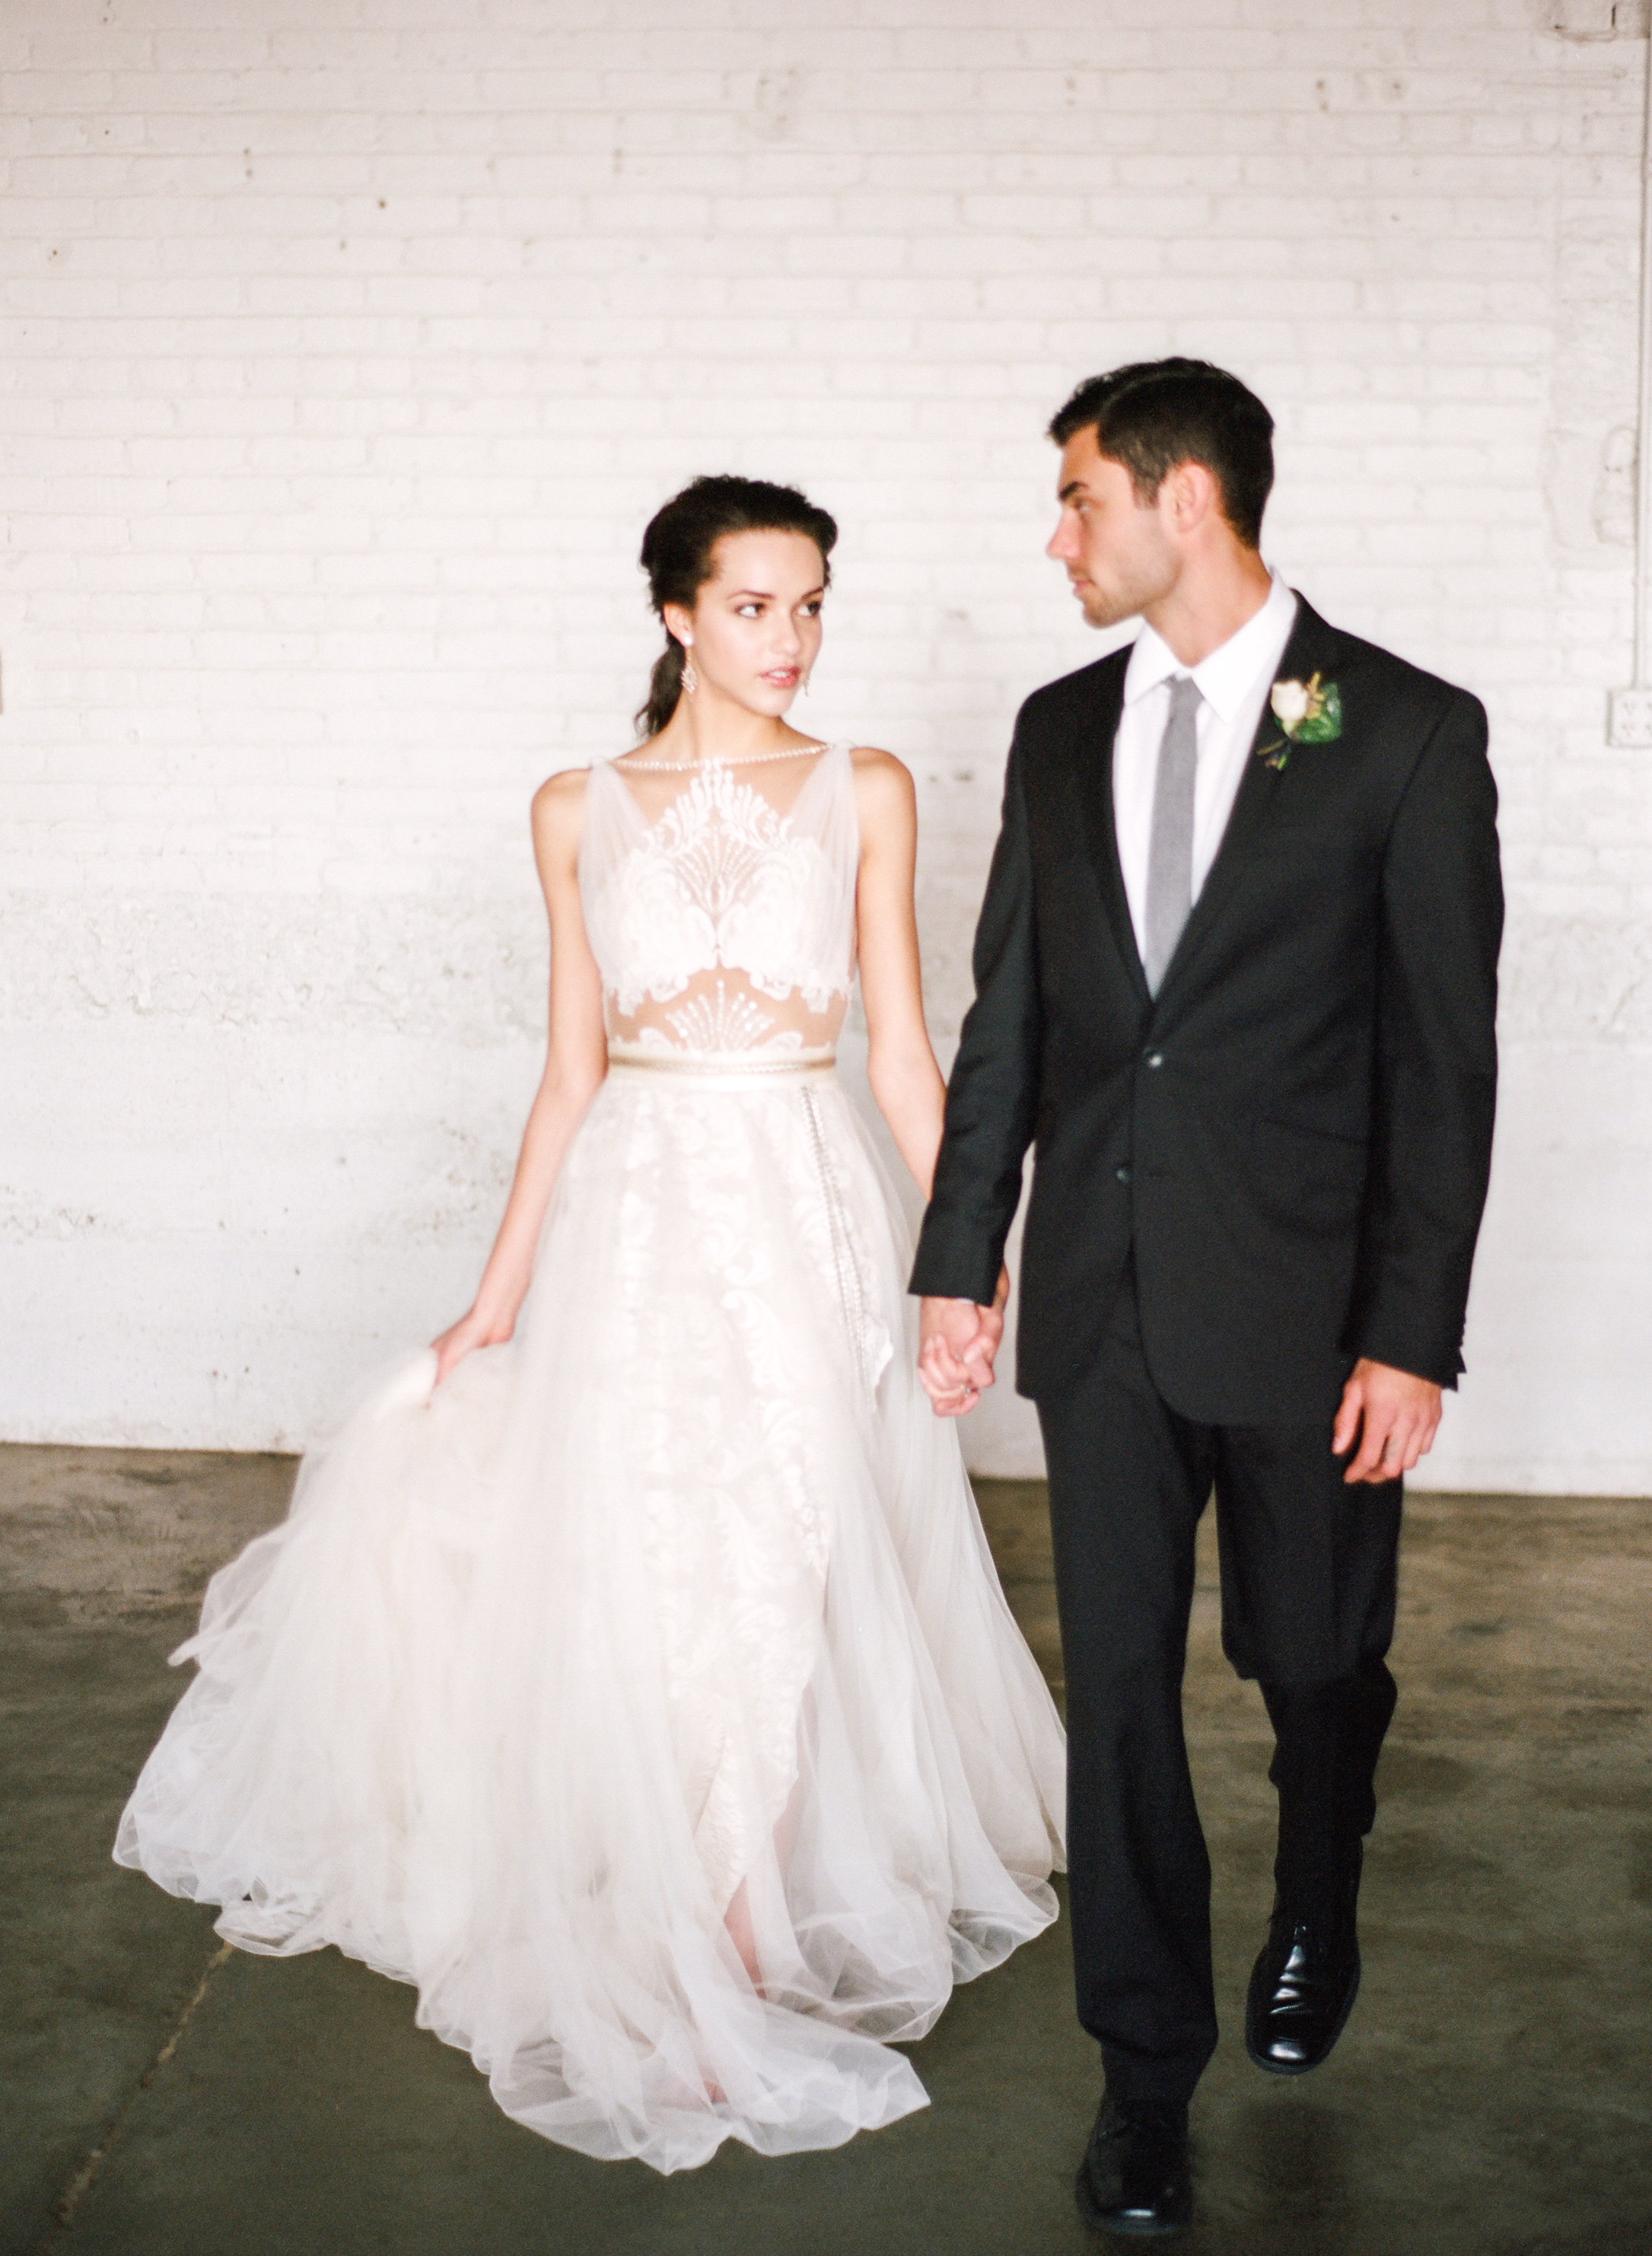 Modern_Organic_Denver_Wedding_Inspiration_by_Connie_Whitlock_104.jpg